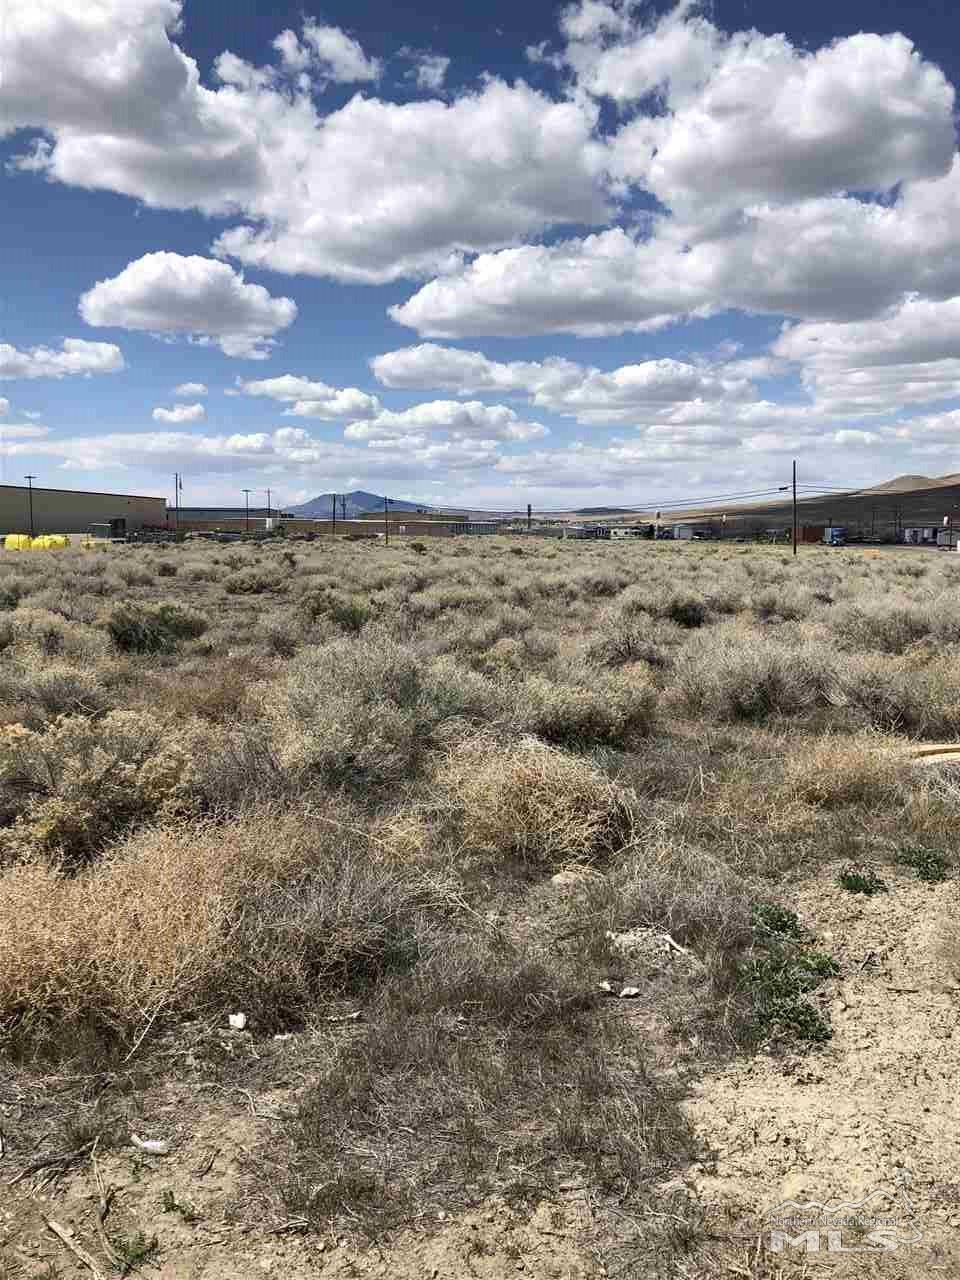 Image for 000 South of Railroad Tracks, Winnemucca, NV 89445